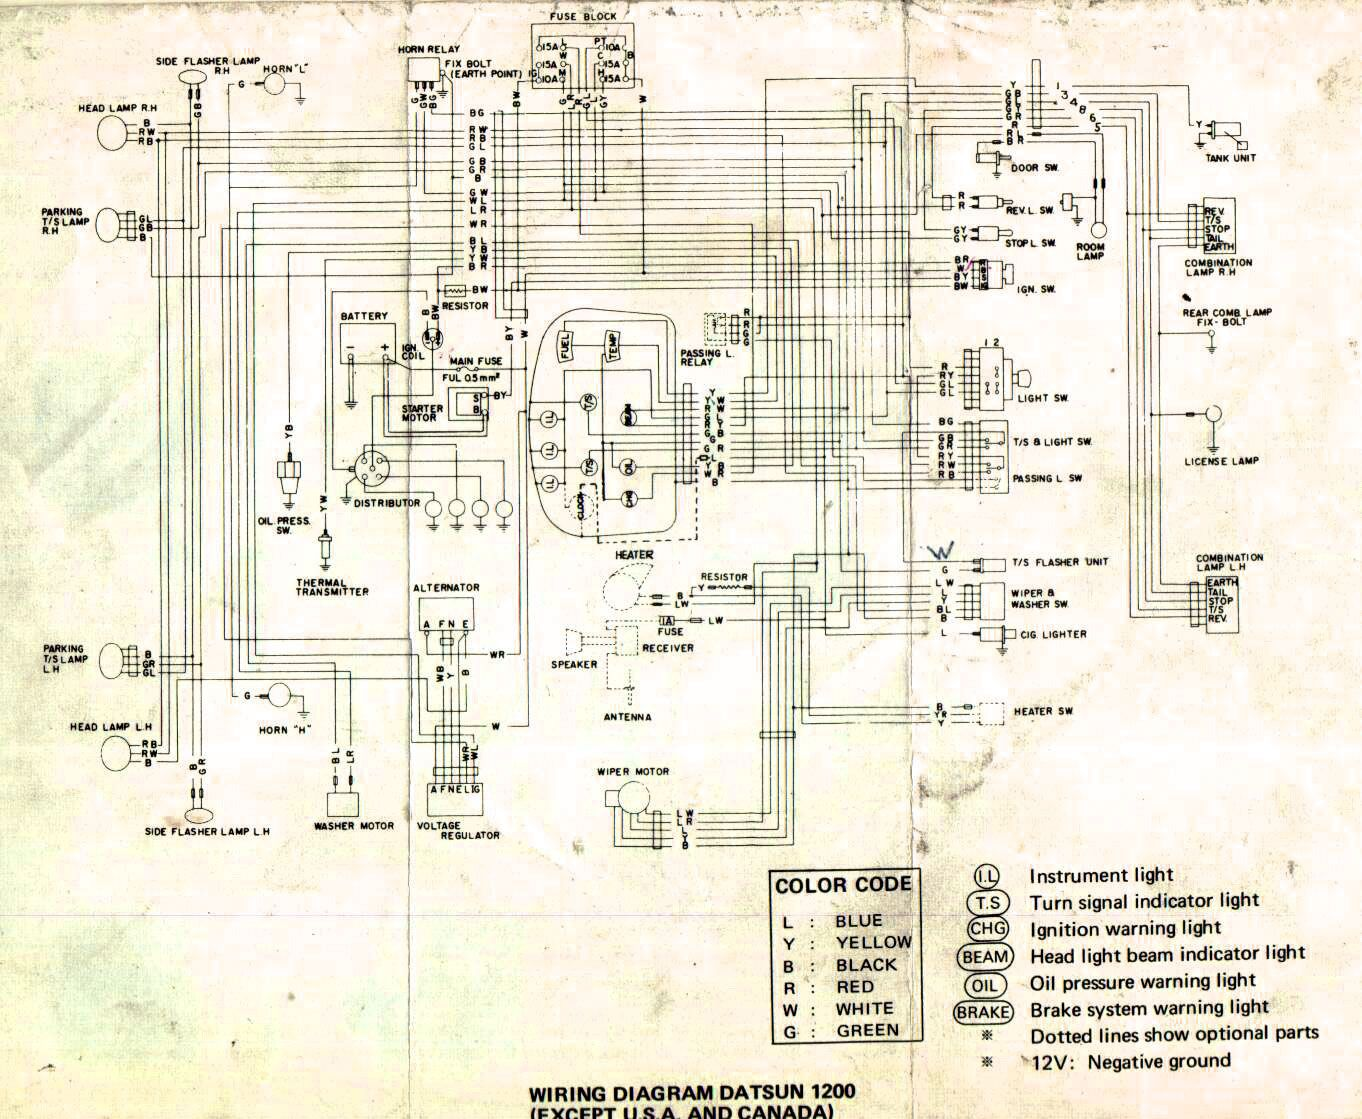 hight resolution of wiring diagram for nissan 1400 bakkie 8 nissan nissan diagram nissan 1400 wiring diagram free download